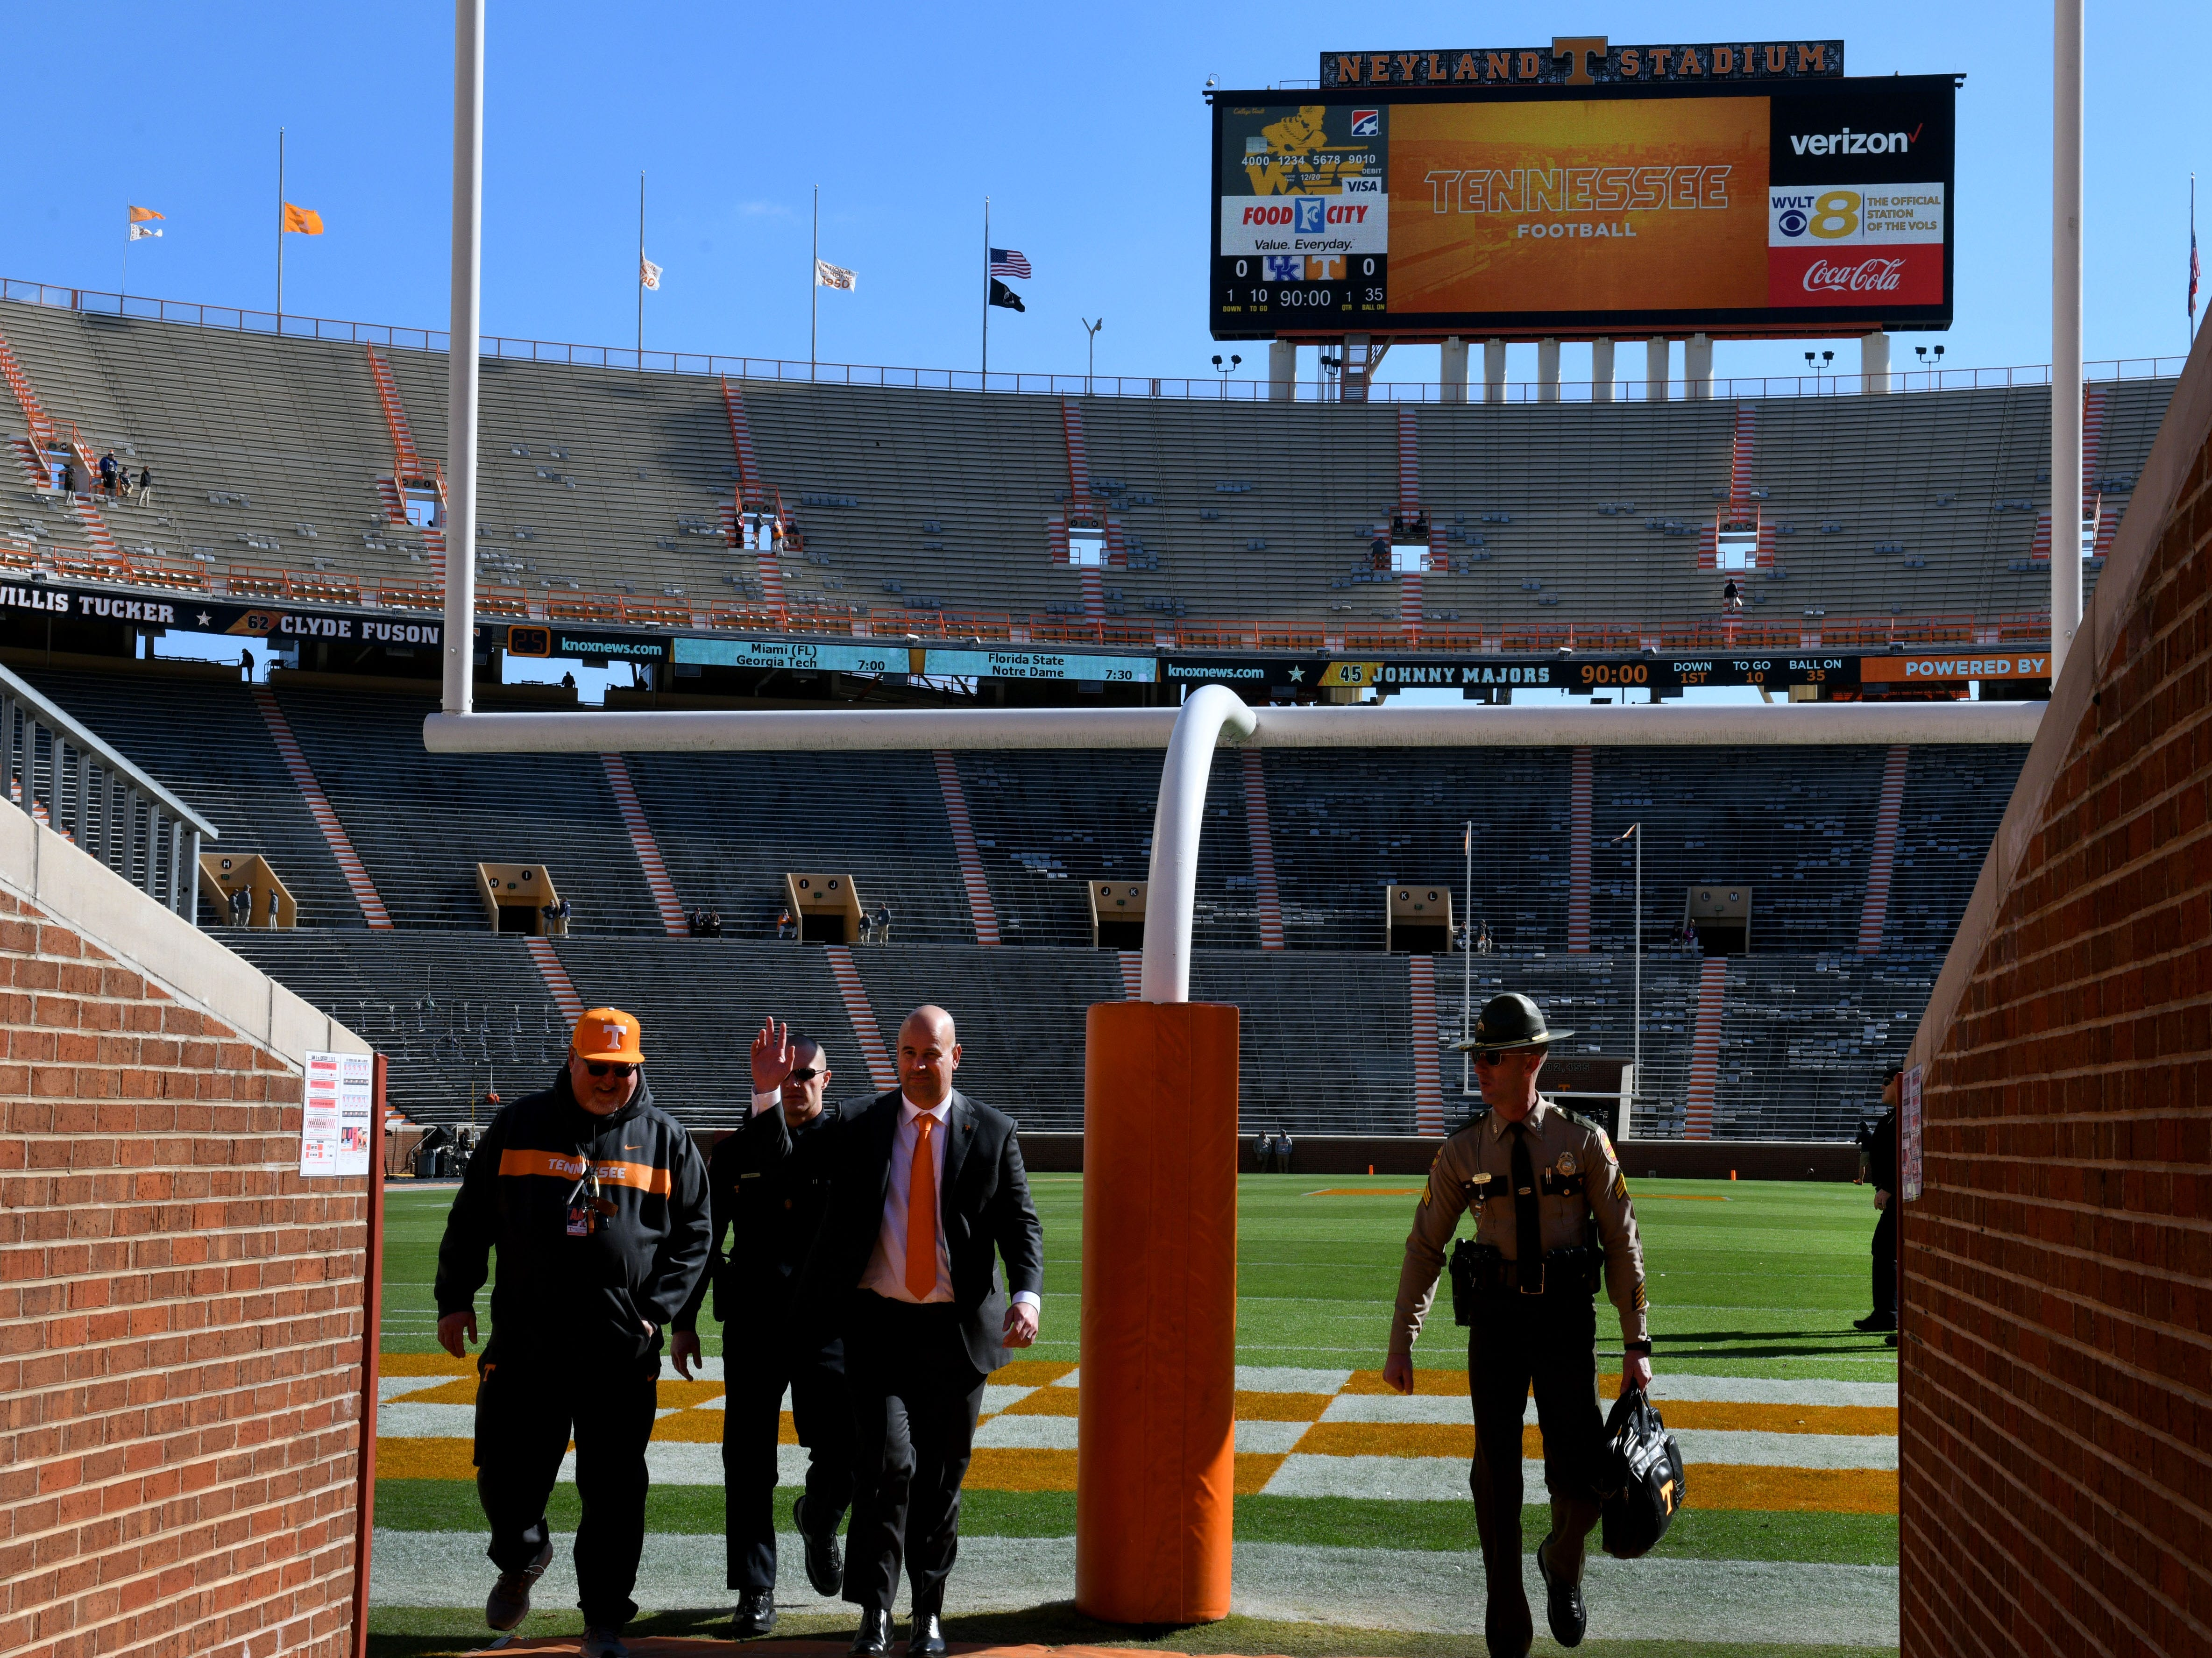 Tennessee Head Coach Jeremy Pruitt finishes walking there field following the Vol Walk before the Kentucky game Saturday, November 10, 2018 at Neyland Stadium in Knoxville, Tenn.